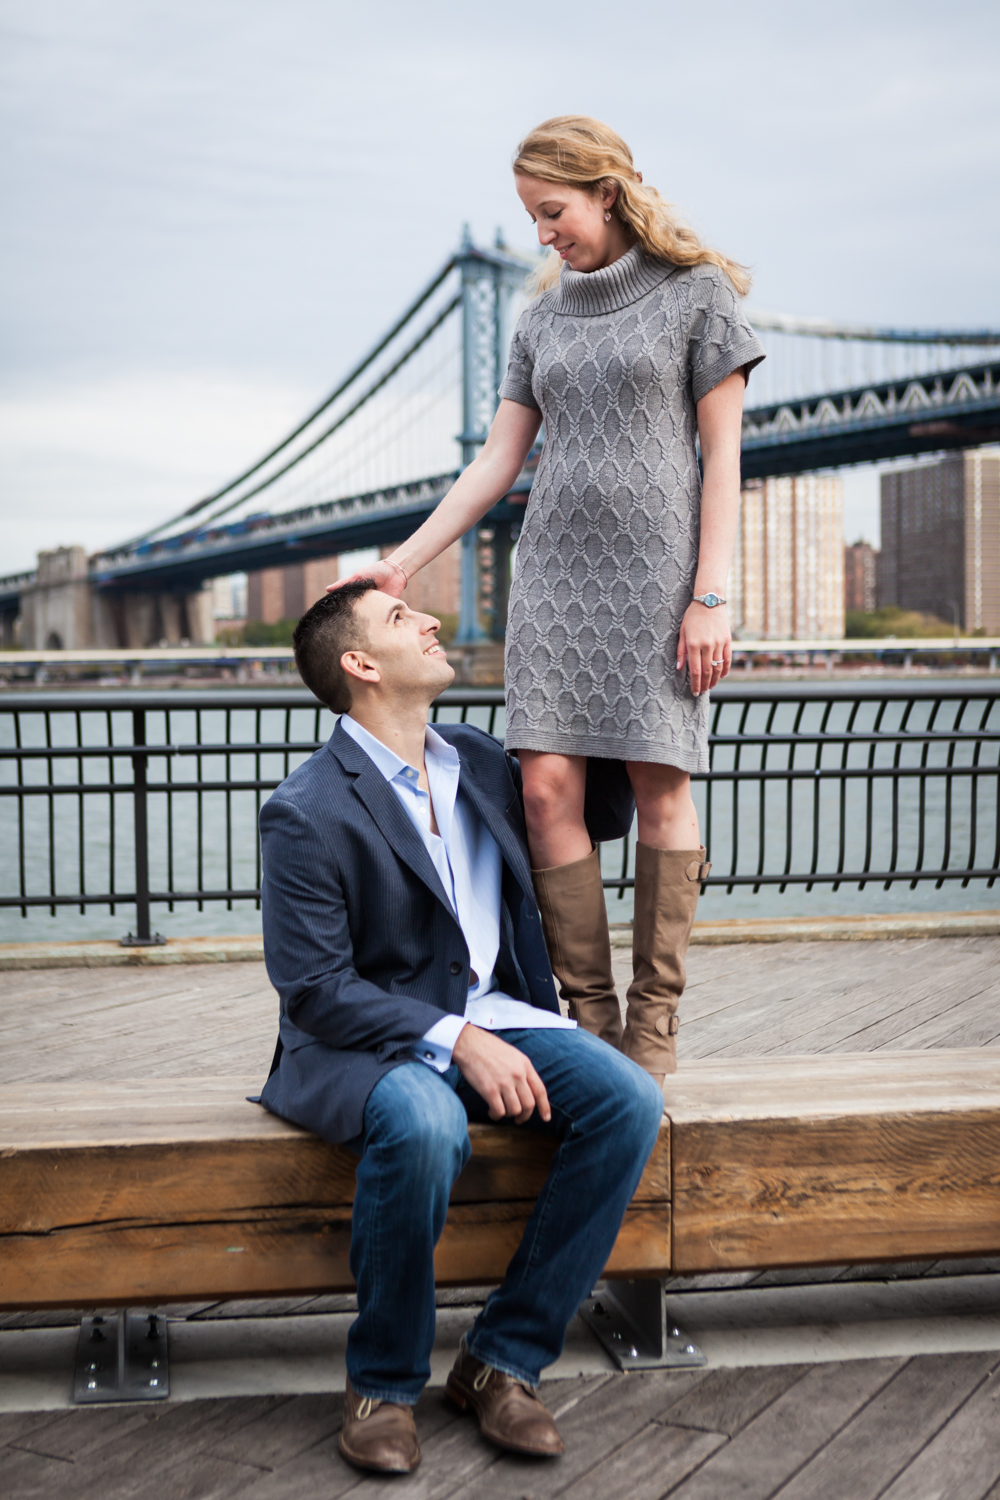 Man sitting on bench looking up at woman during a Brooklyn Bridge Park engagement shoot